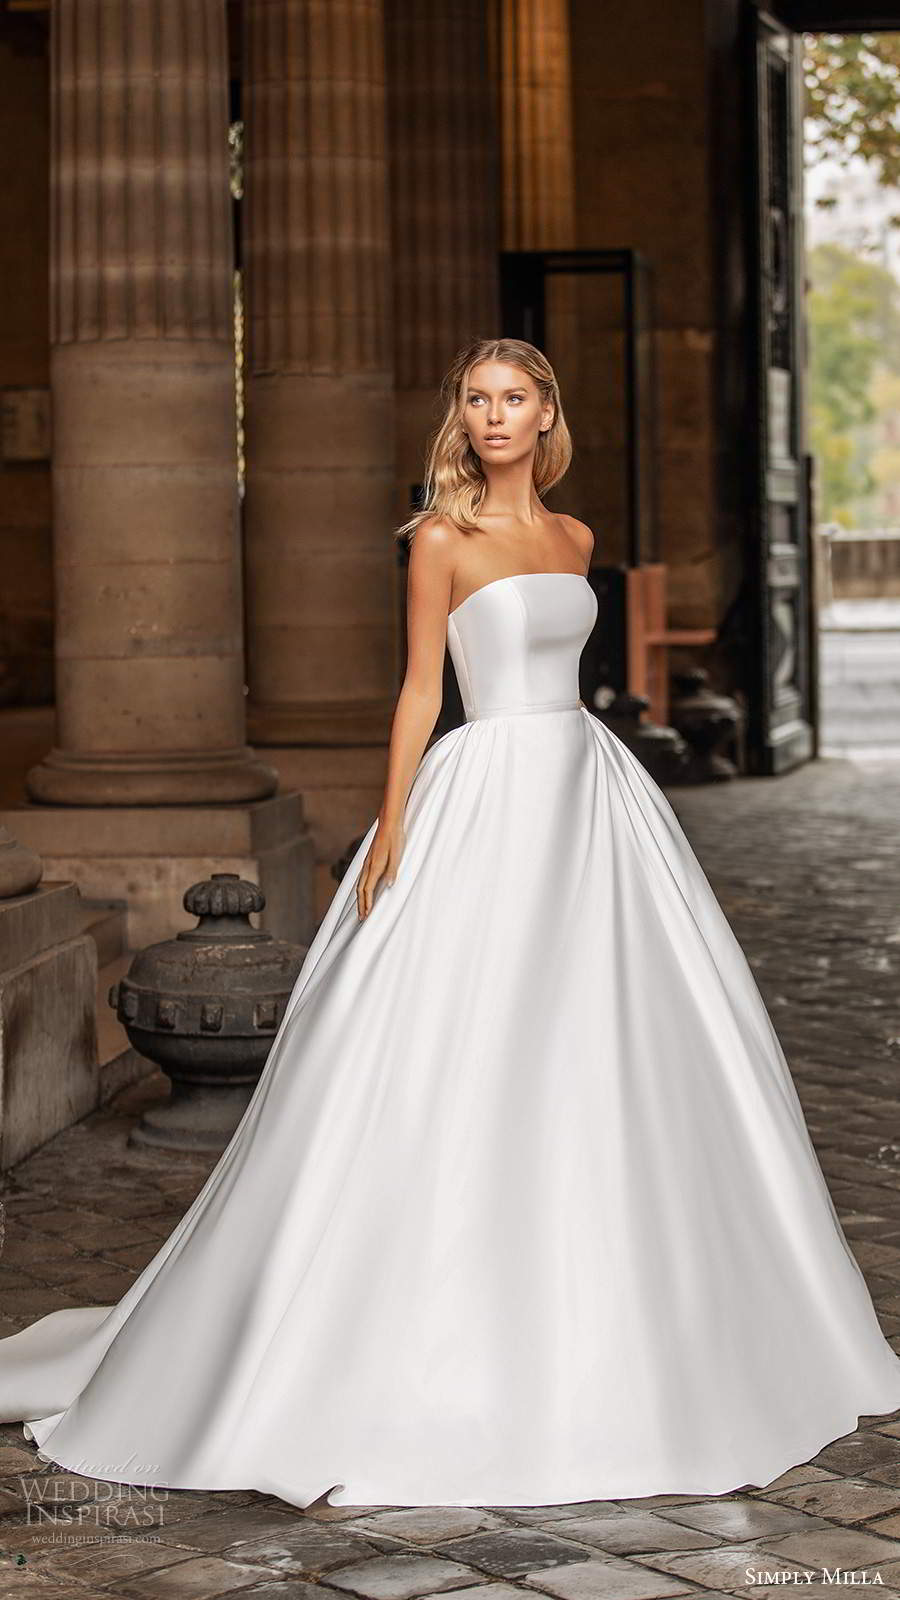 simply milla nova 2020 bridal strapless straight across neckline clean minimalist a line ball gown wedding dress chapel train (14) mv